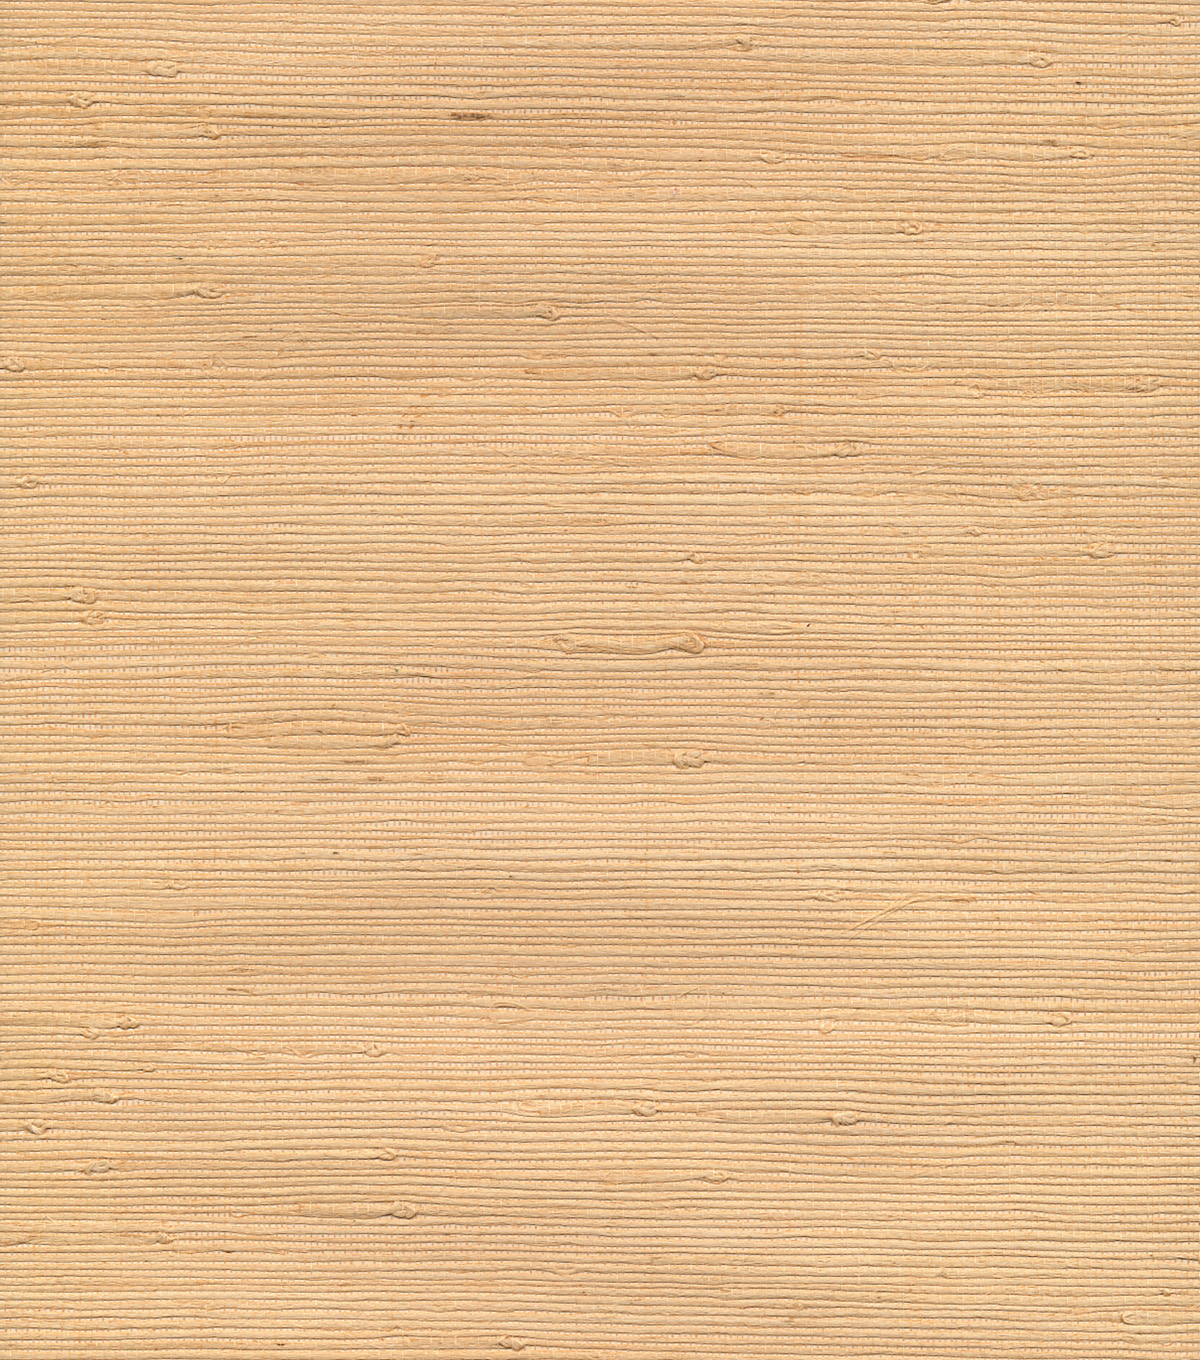 Hotaru Peach Grasscloth Wallpaper